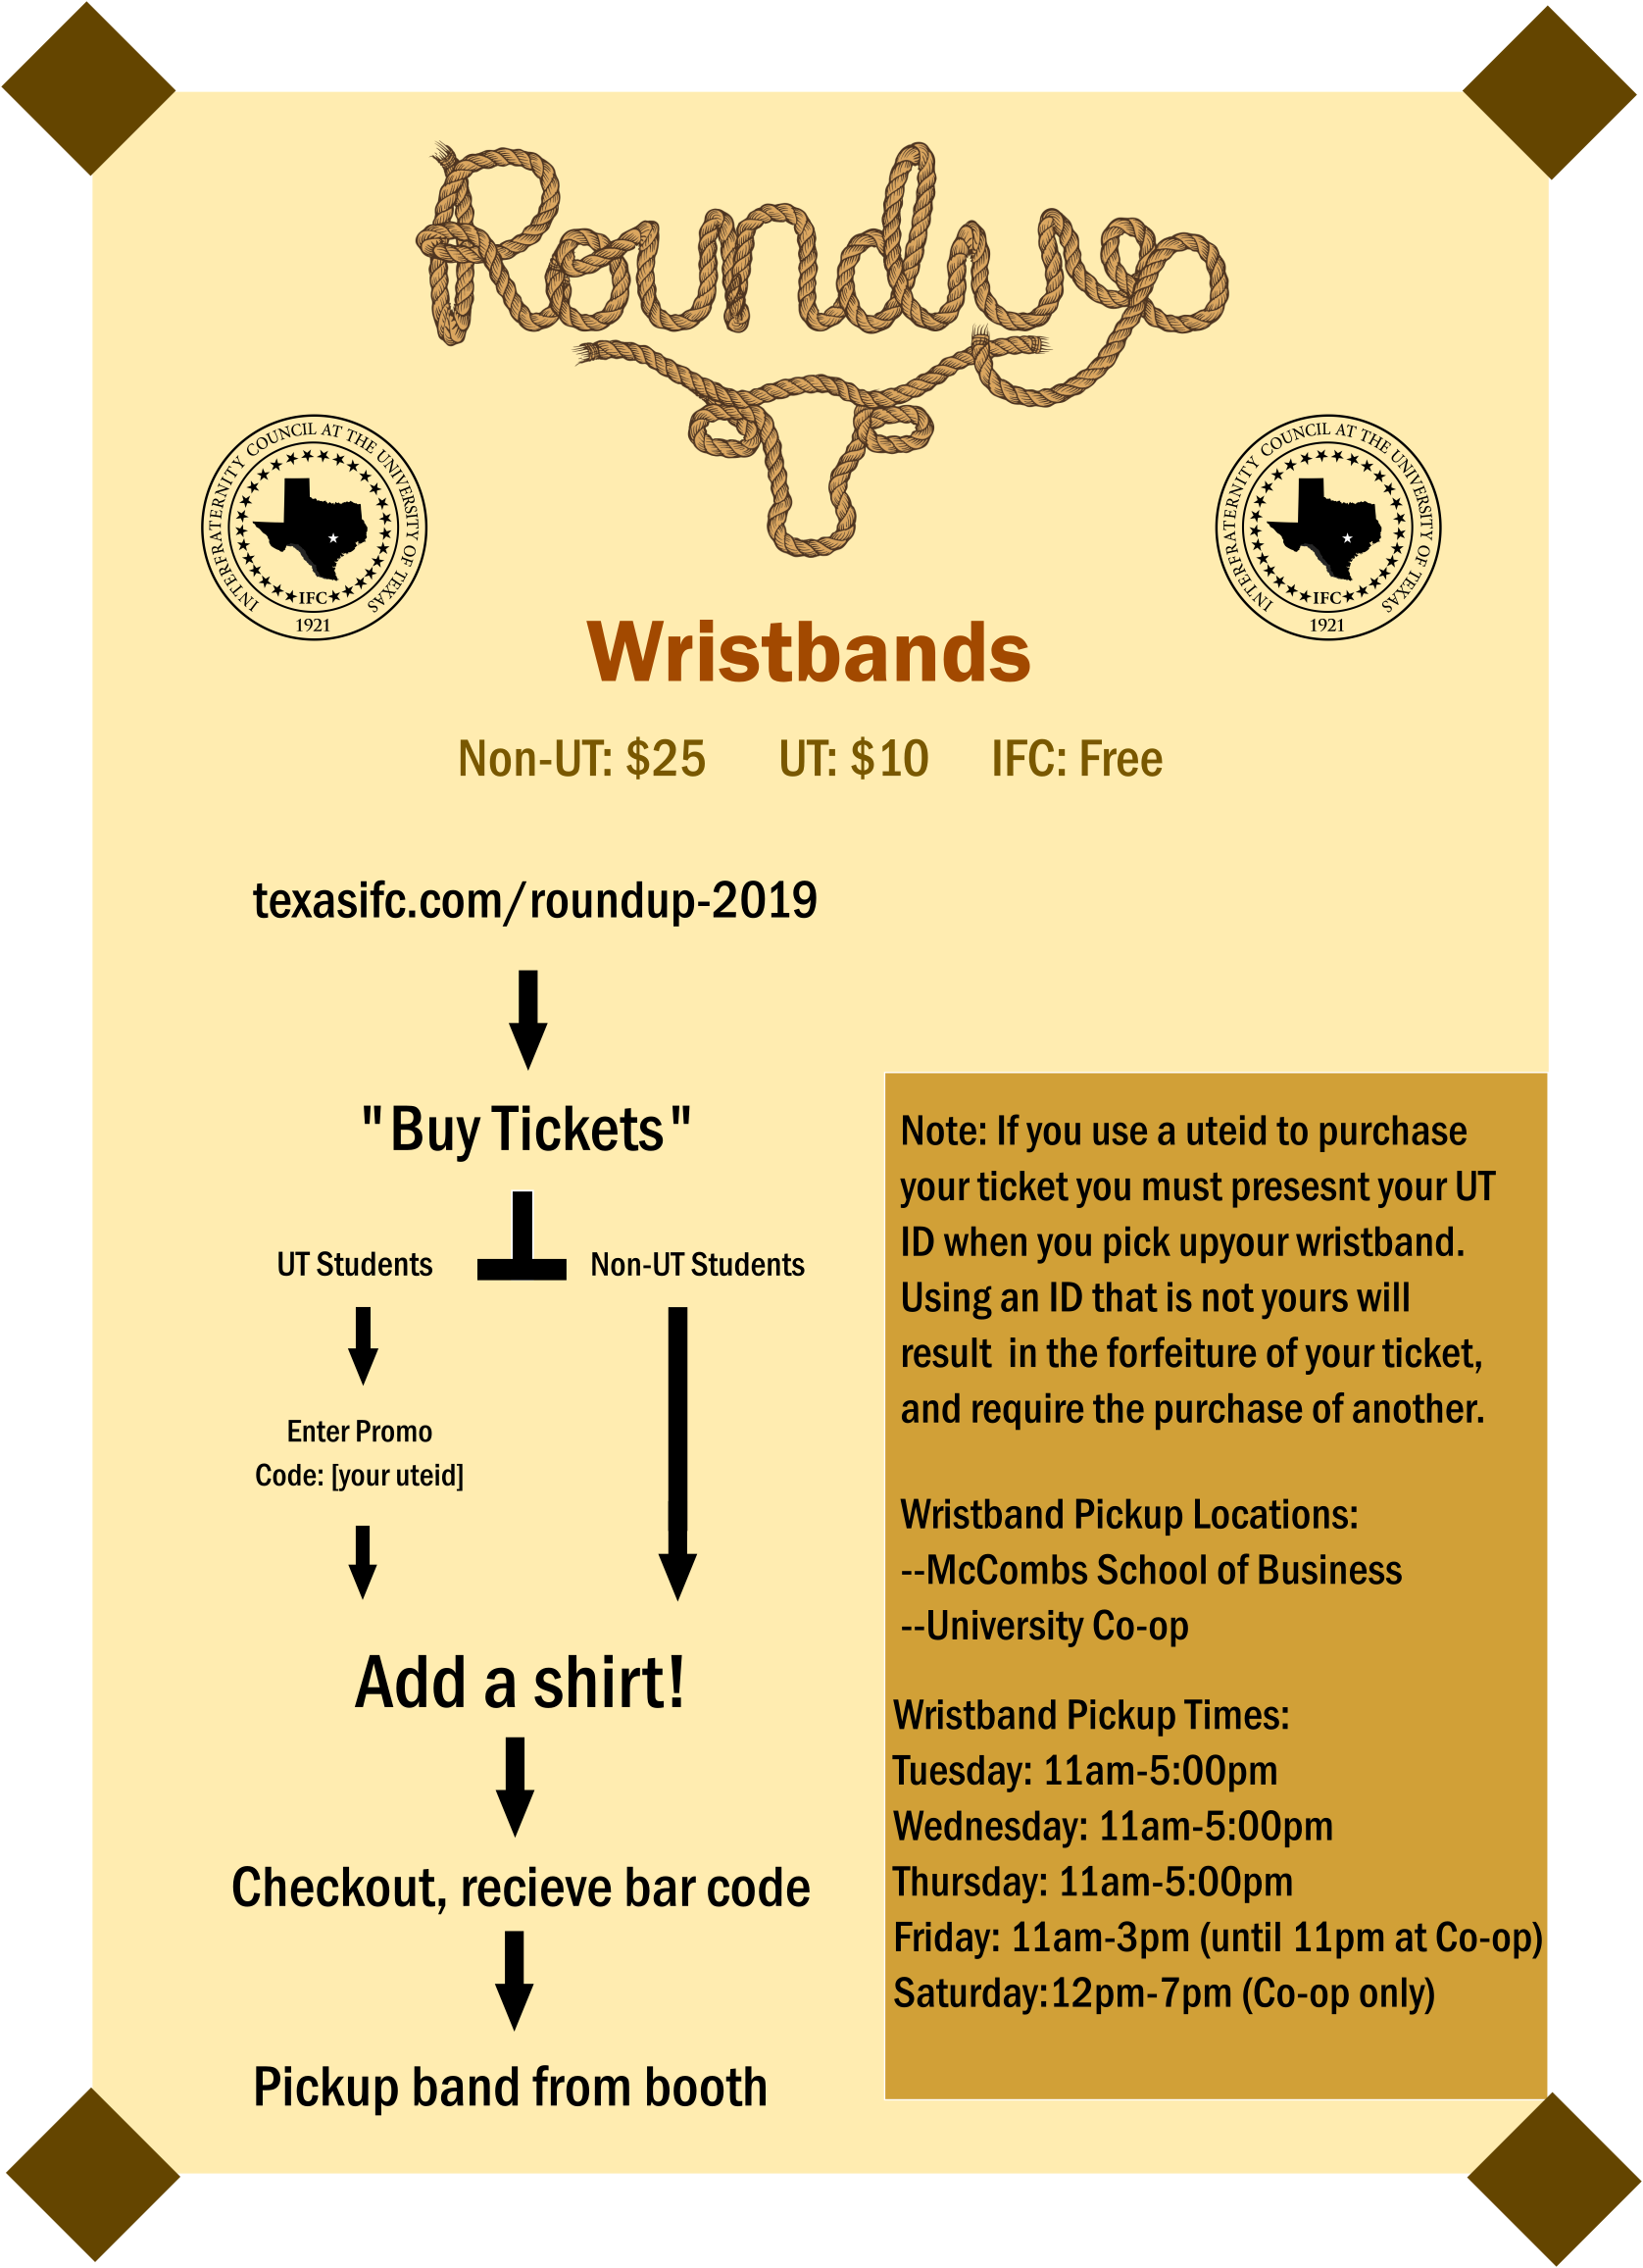 wristband_directions.png